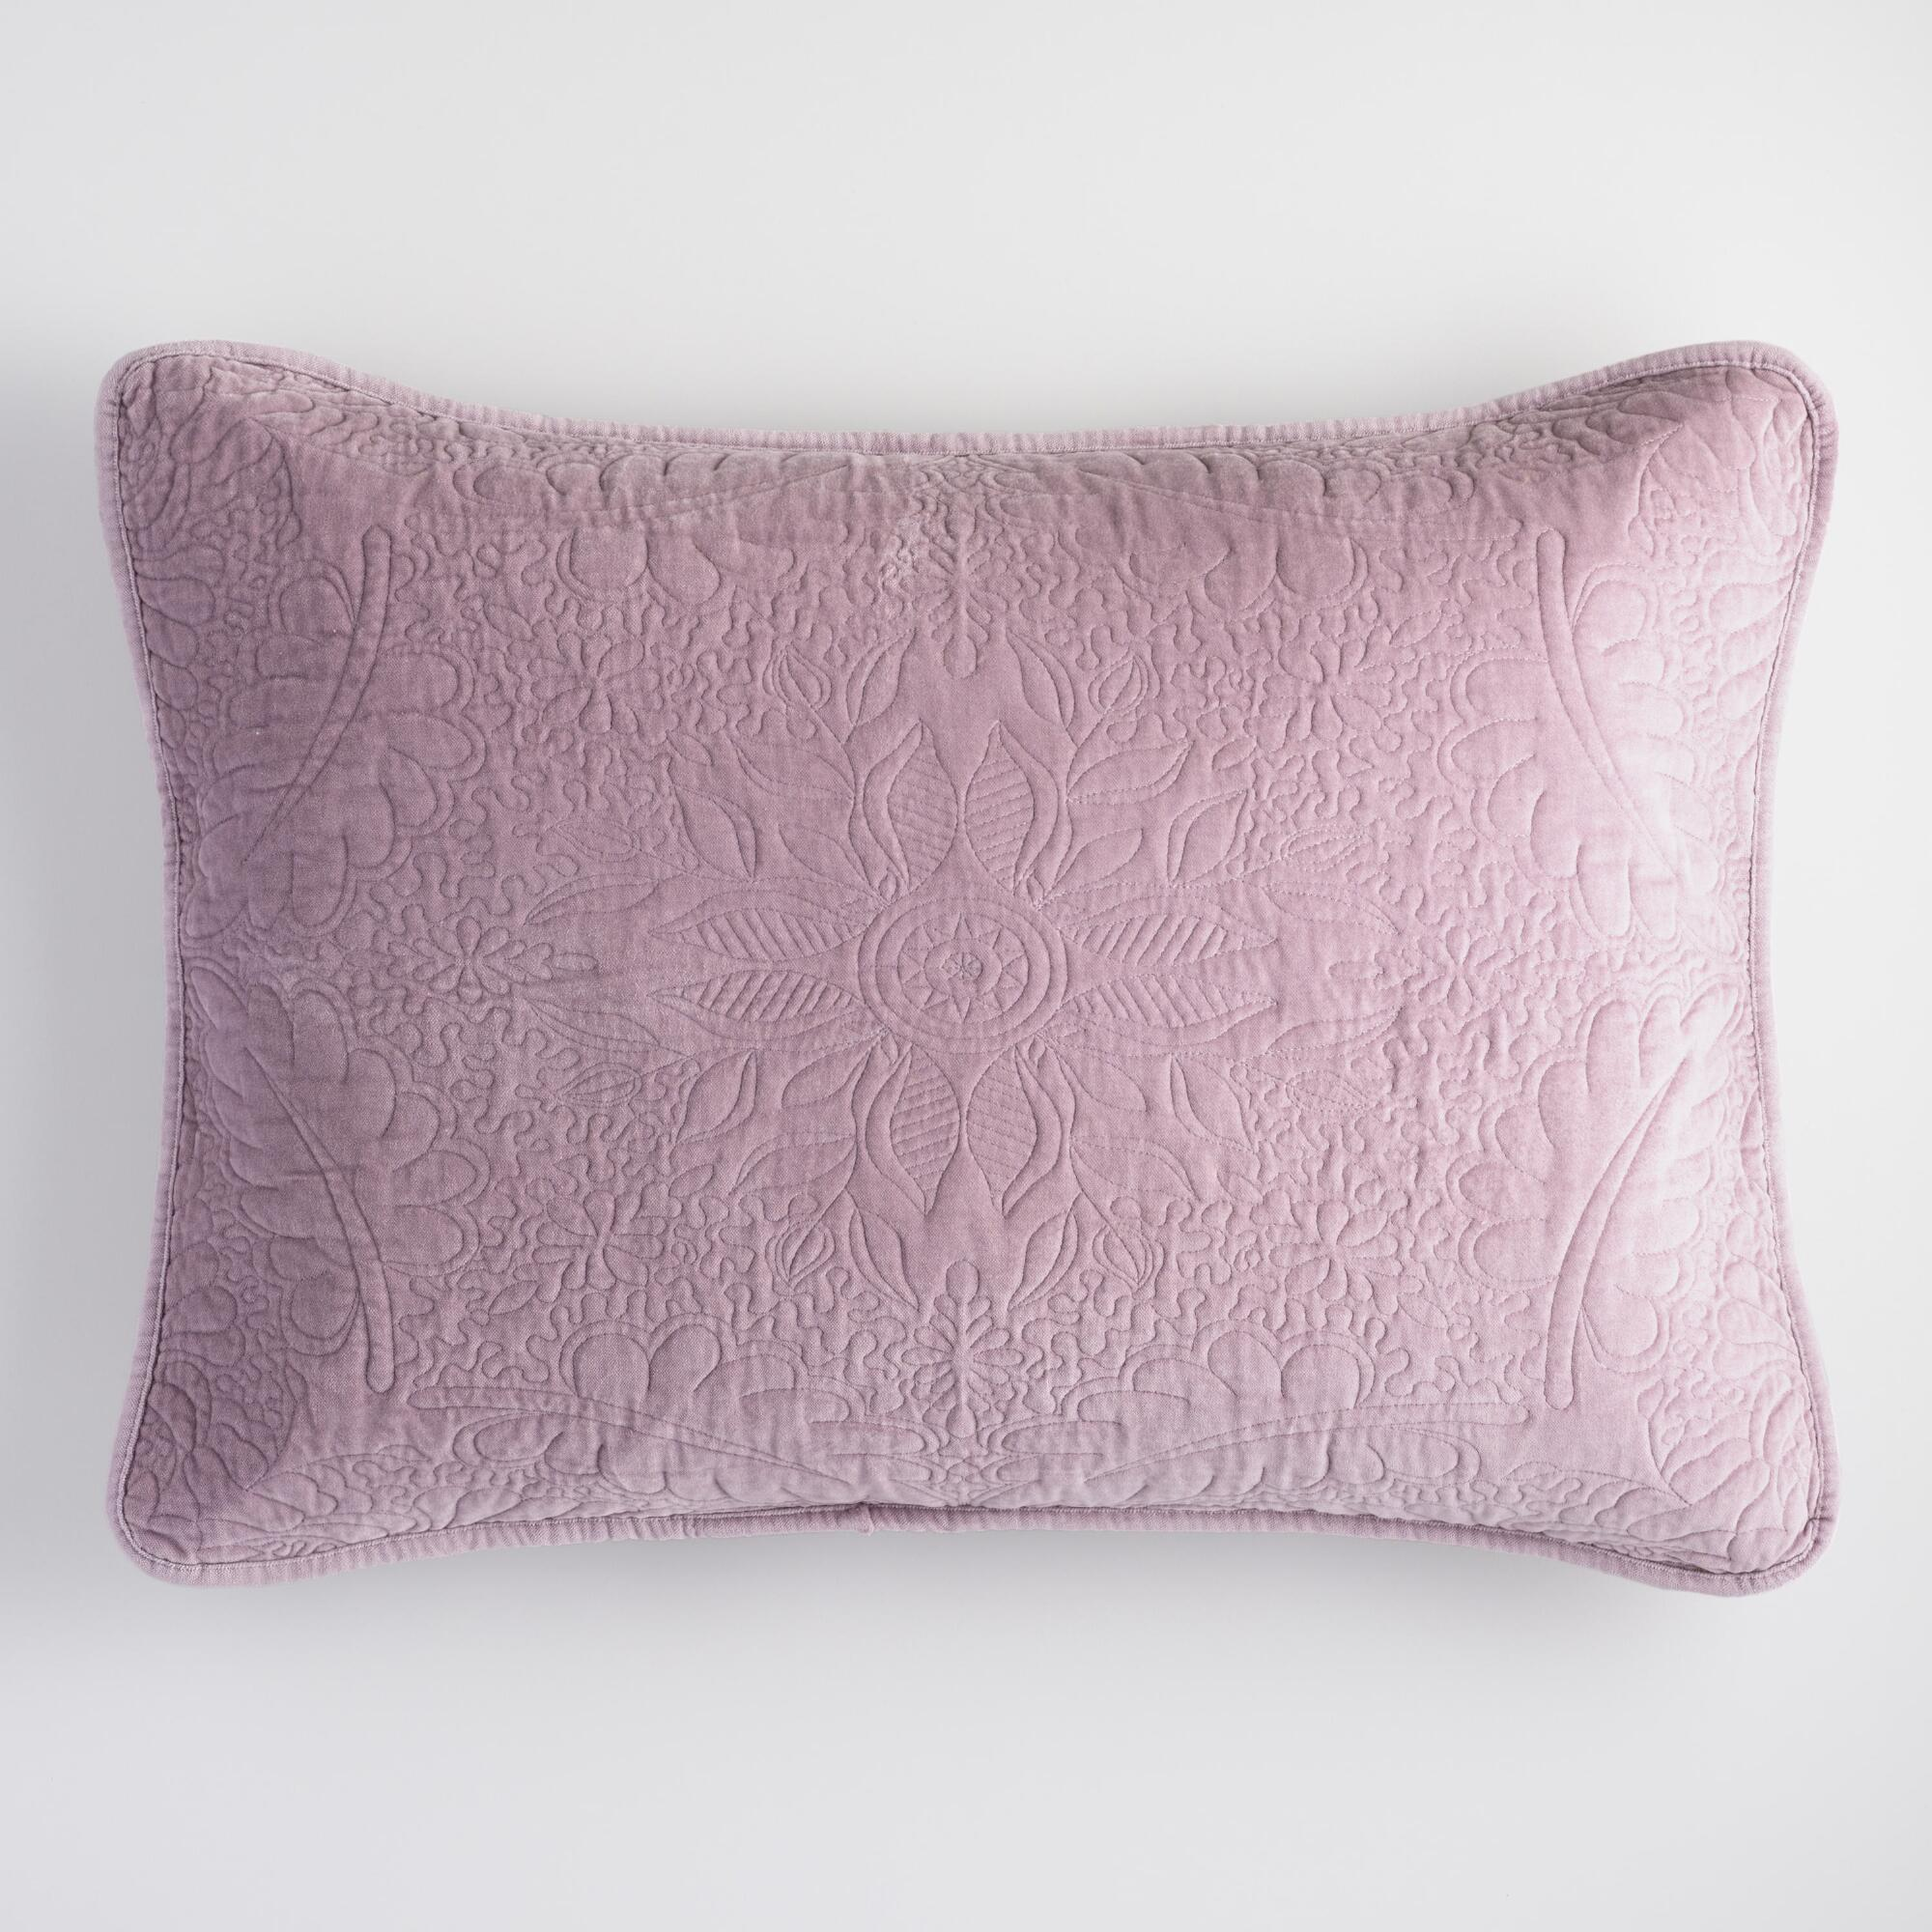 Lavender Velvet Pillow Shams Set of 2 World Market